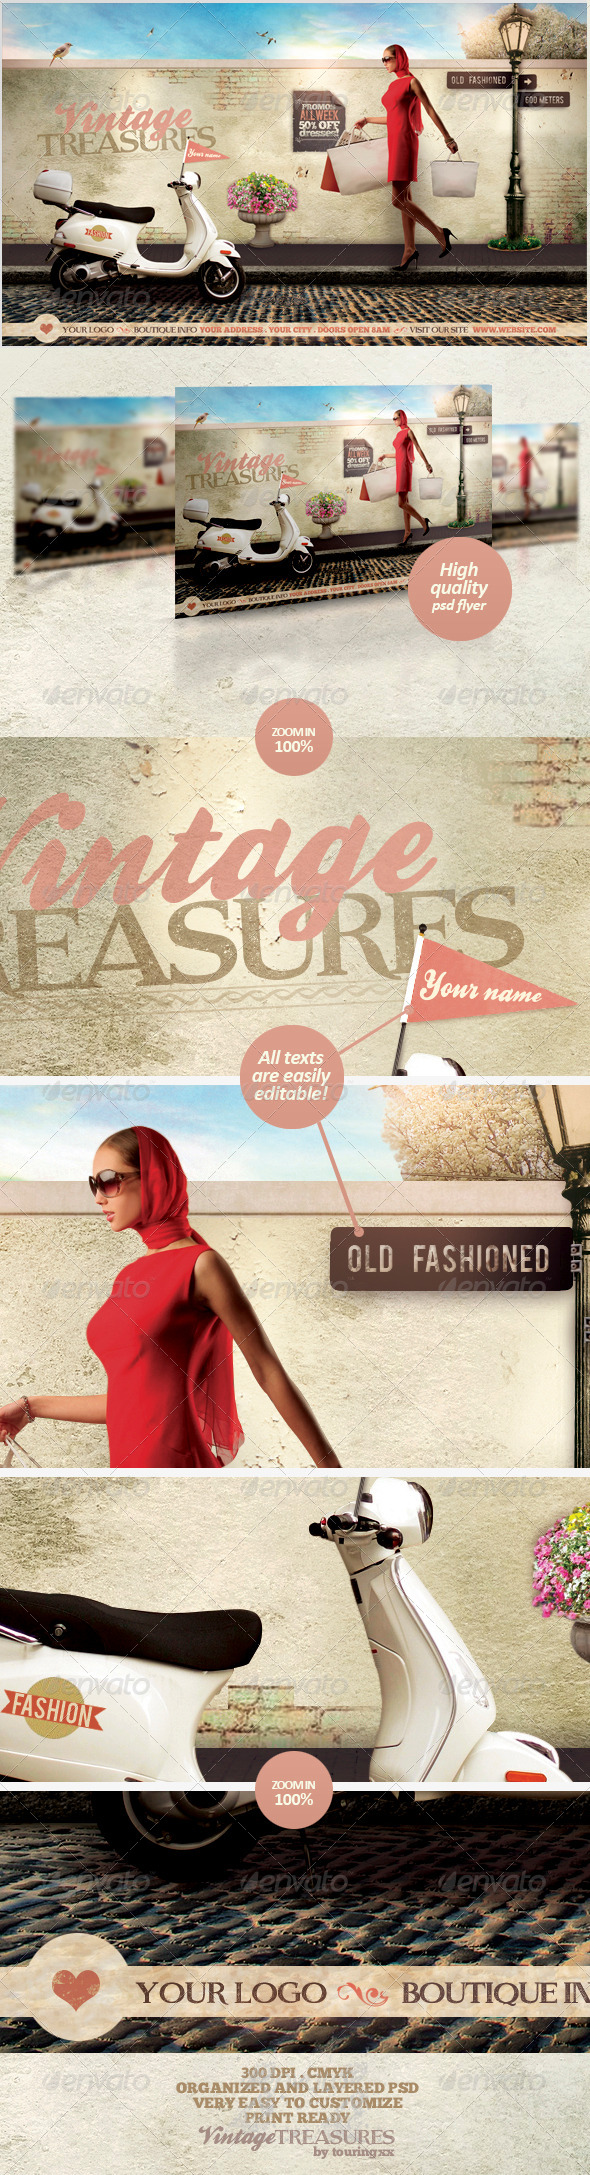 Vintage Treasures Flyer Template - Flyers Print Templates